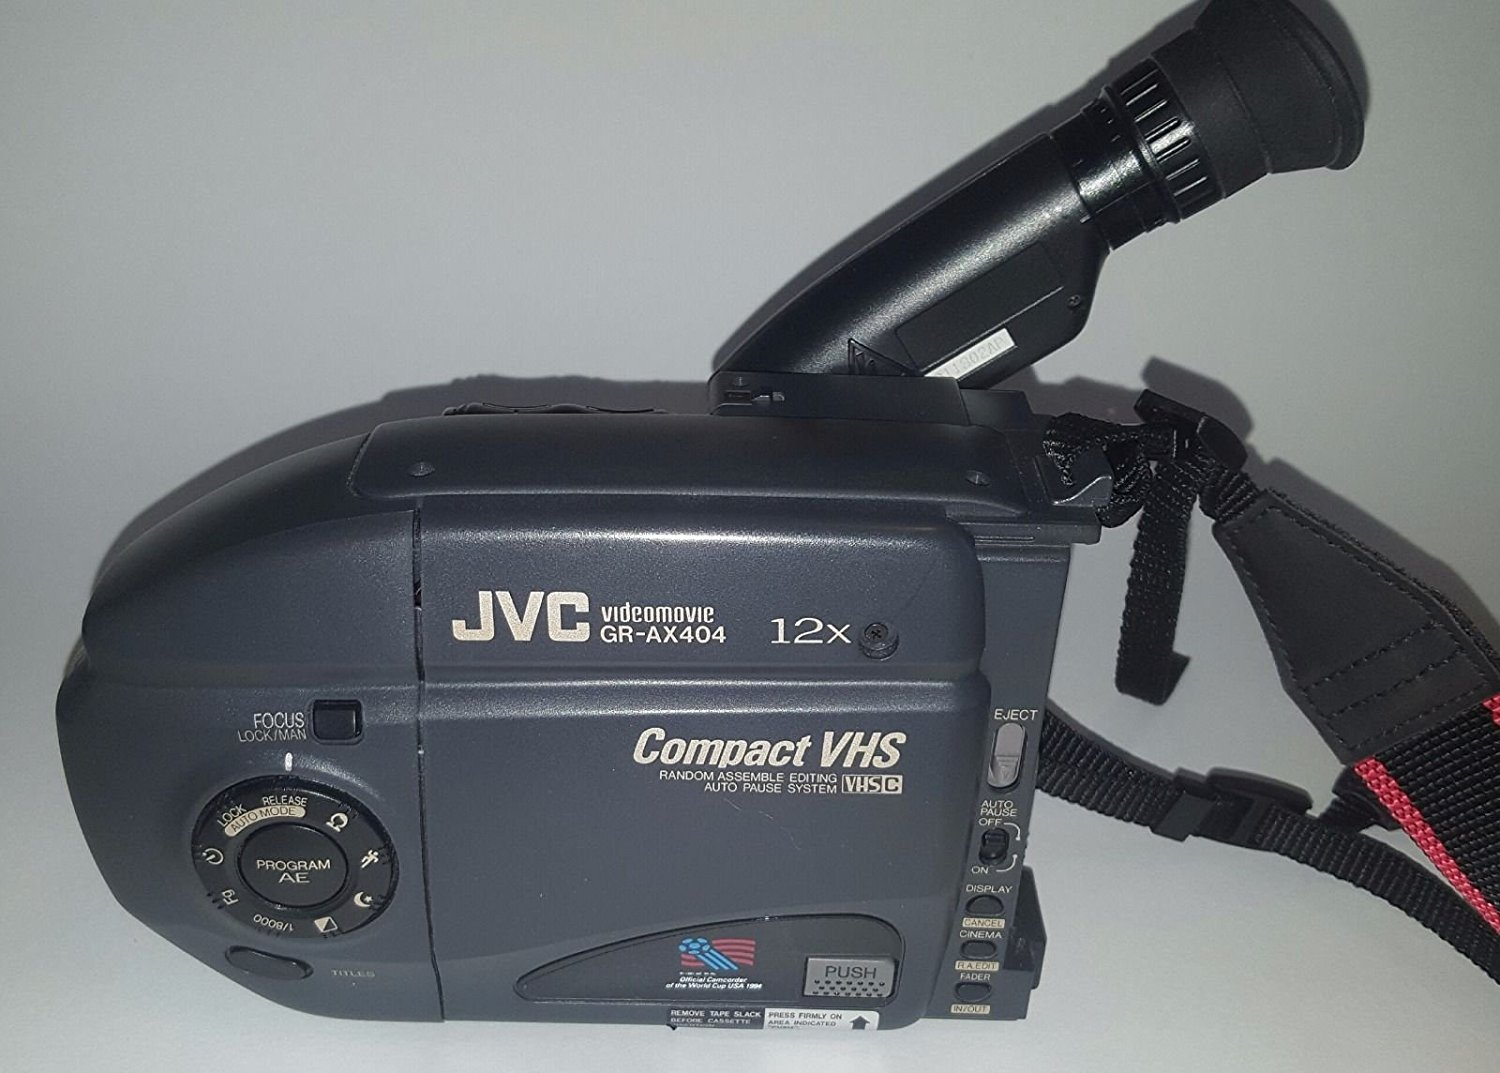 Buy Jvc Camcorder Model Gr Ax404 Compact Vhs C In Cheap Price On Alibaba Com